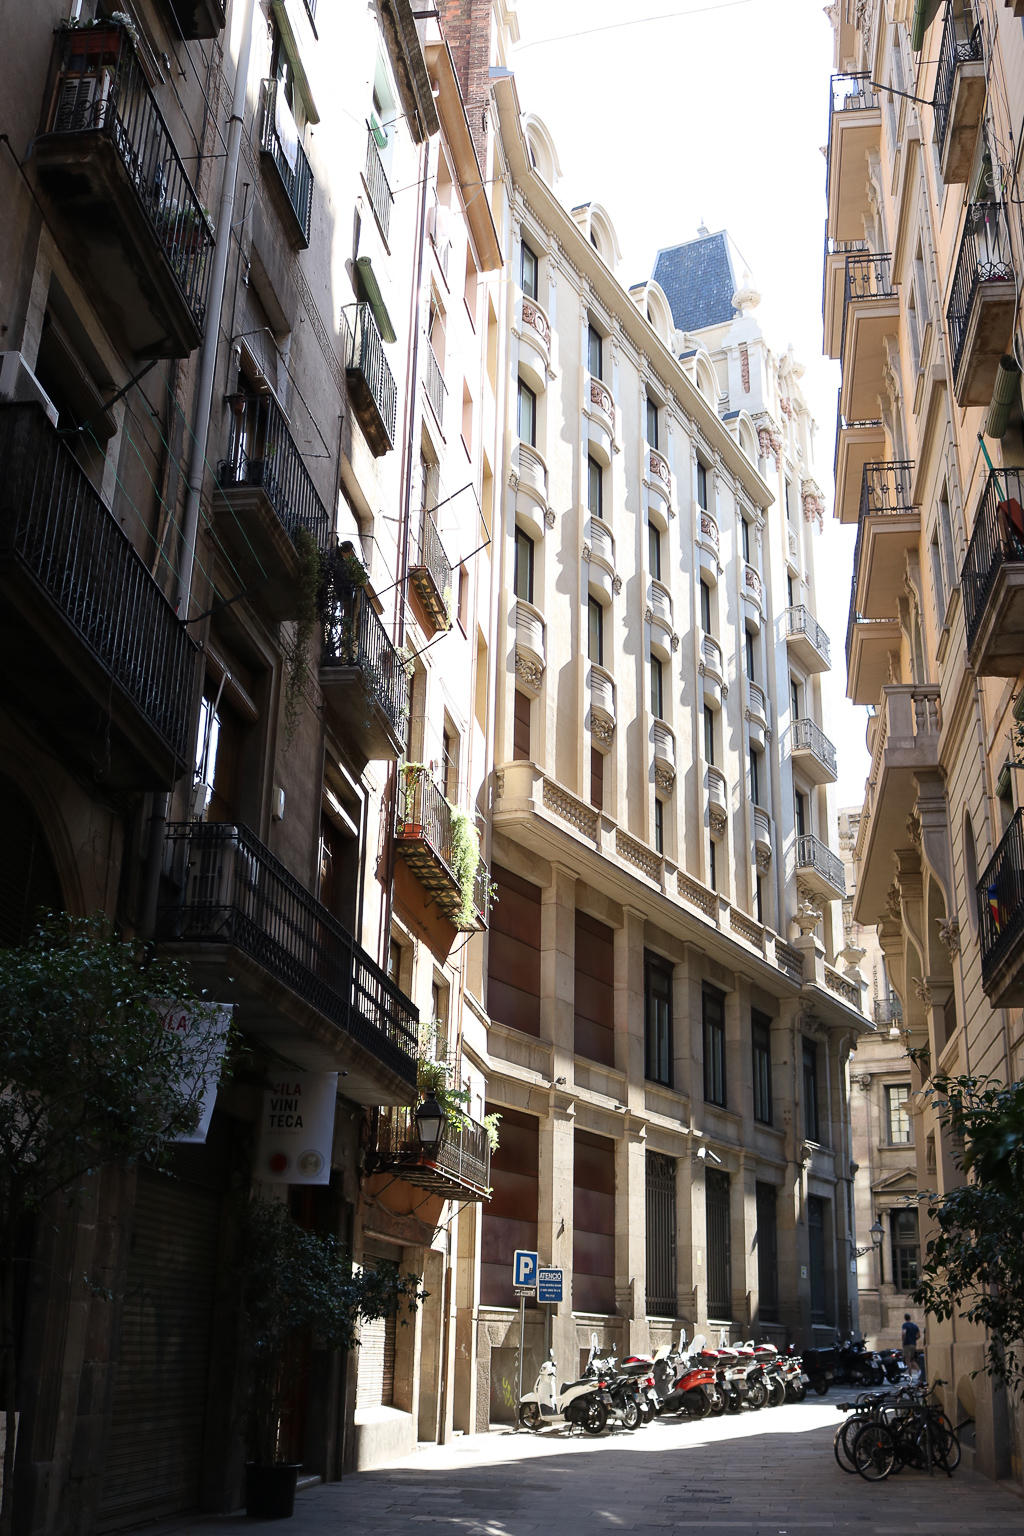 A peek into my great trip to Barcelona, Spain